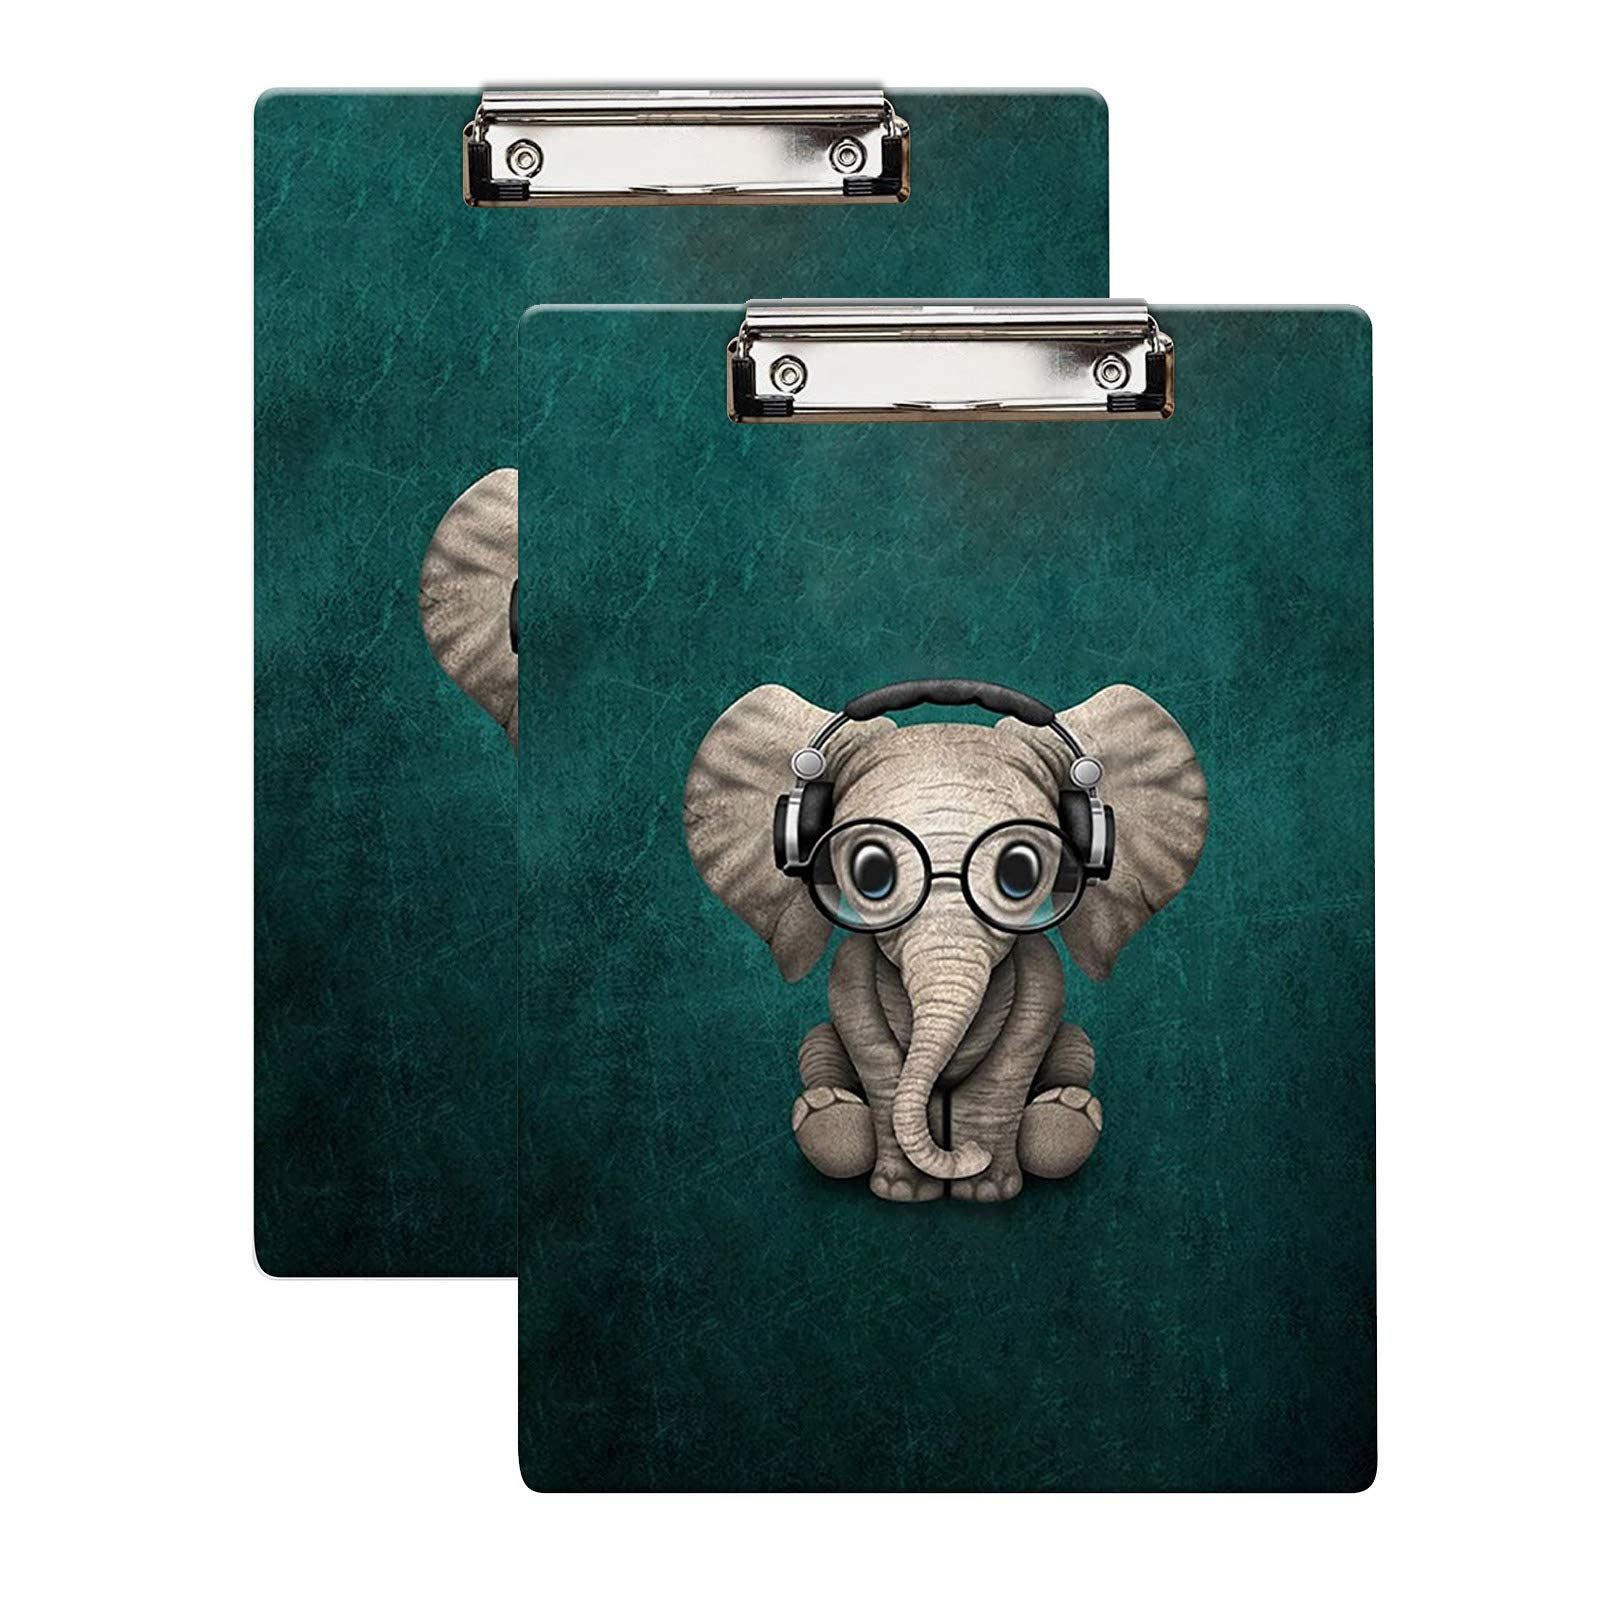 "Britimes Clipboard, 2-Pack, Decorative Office School Hardboard Wood Nursing Clip Board and Pull for Standard A4 Letter Size Cute Elephant 12.5"" X 8.5"""